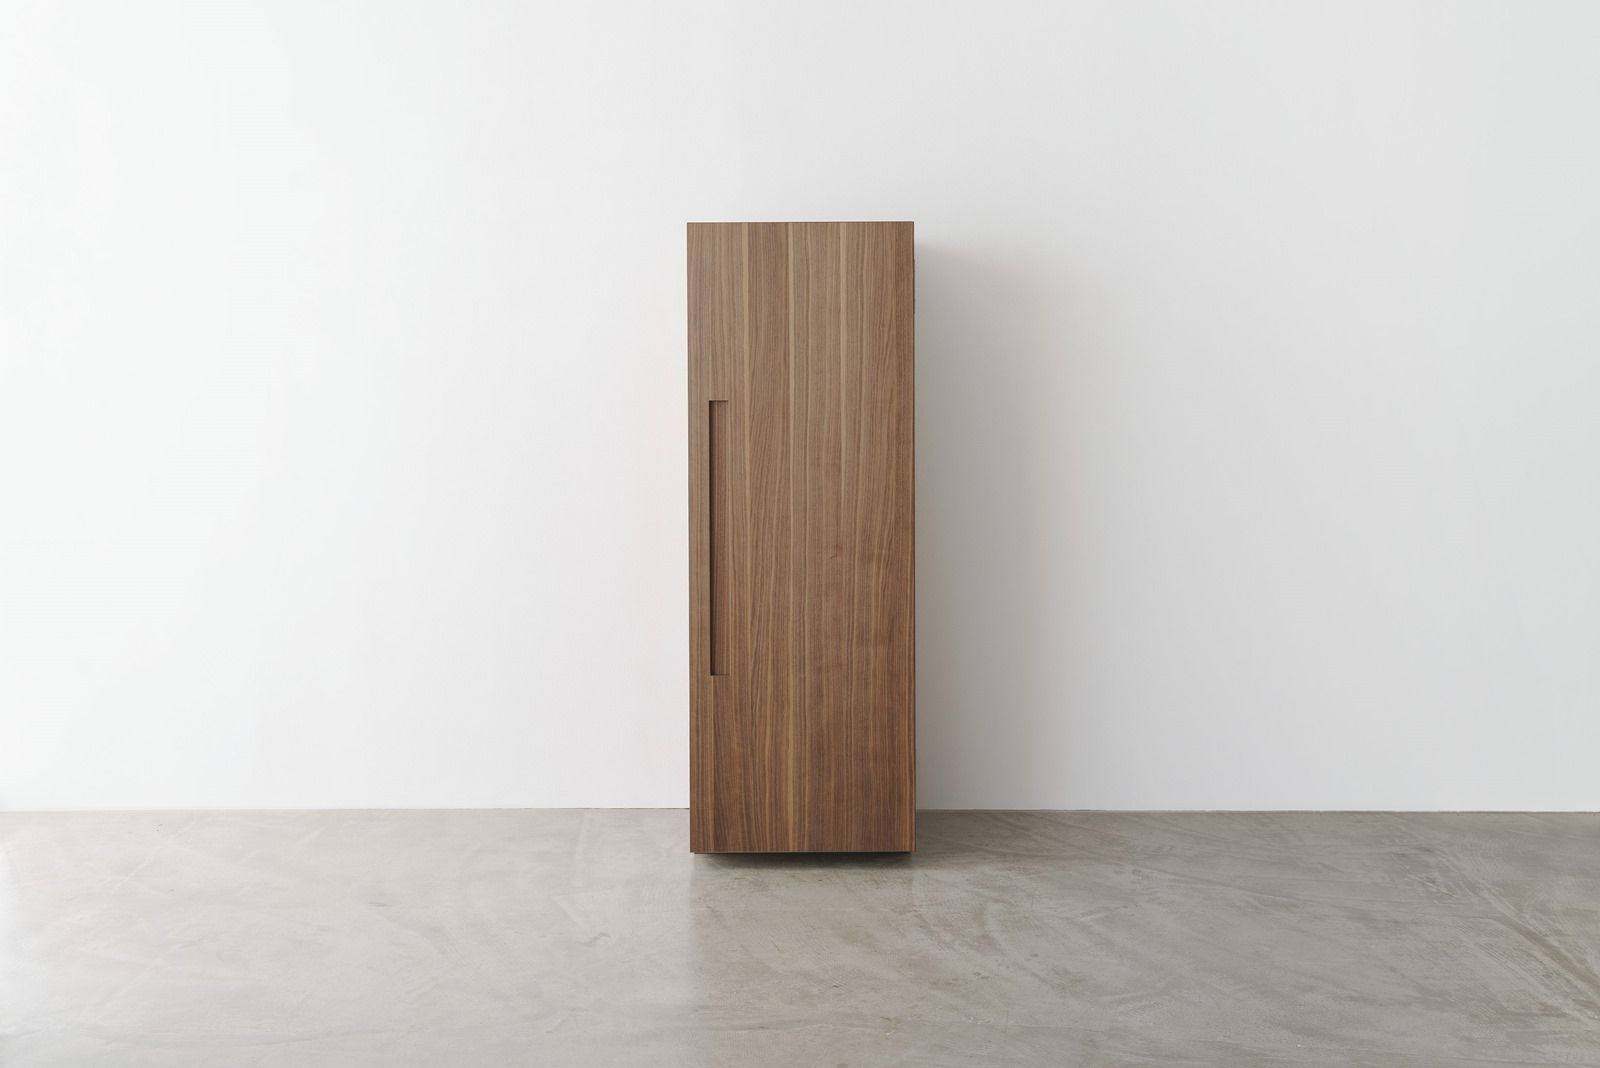 When closed, the kitchen tool cabinet has a sculptural presence in the room. Opening the doors gives the user a clear view of the essential kitchen tools.